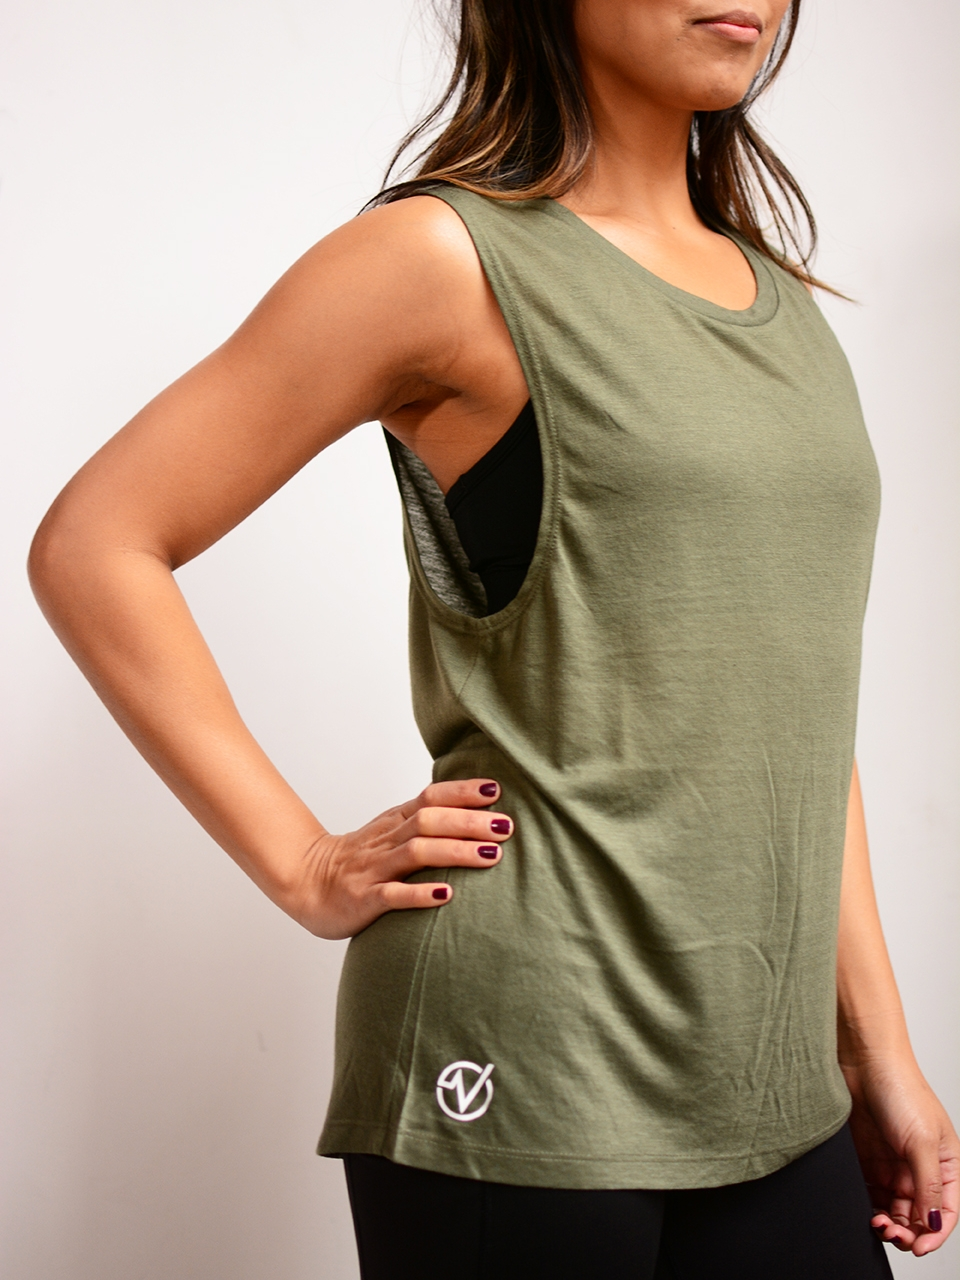 Green_Muscle_Tank_Side_1.jpg